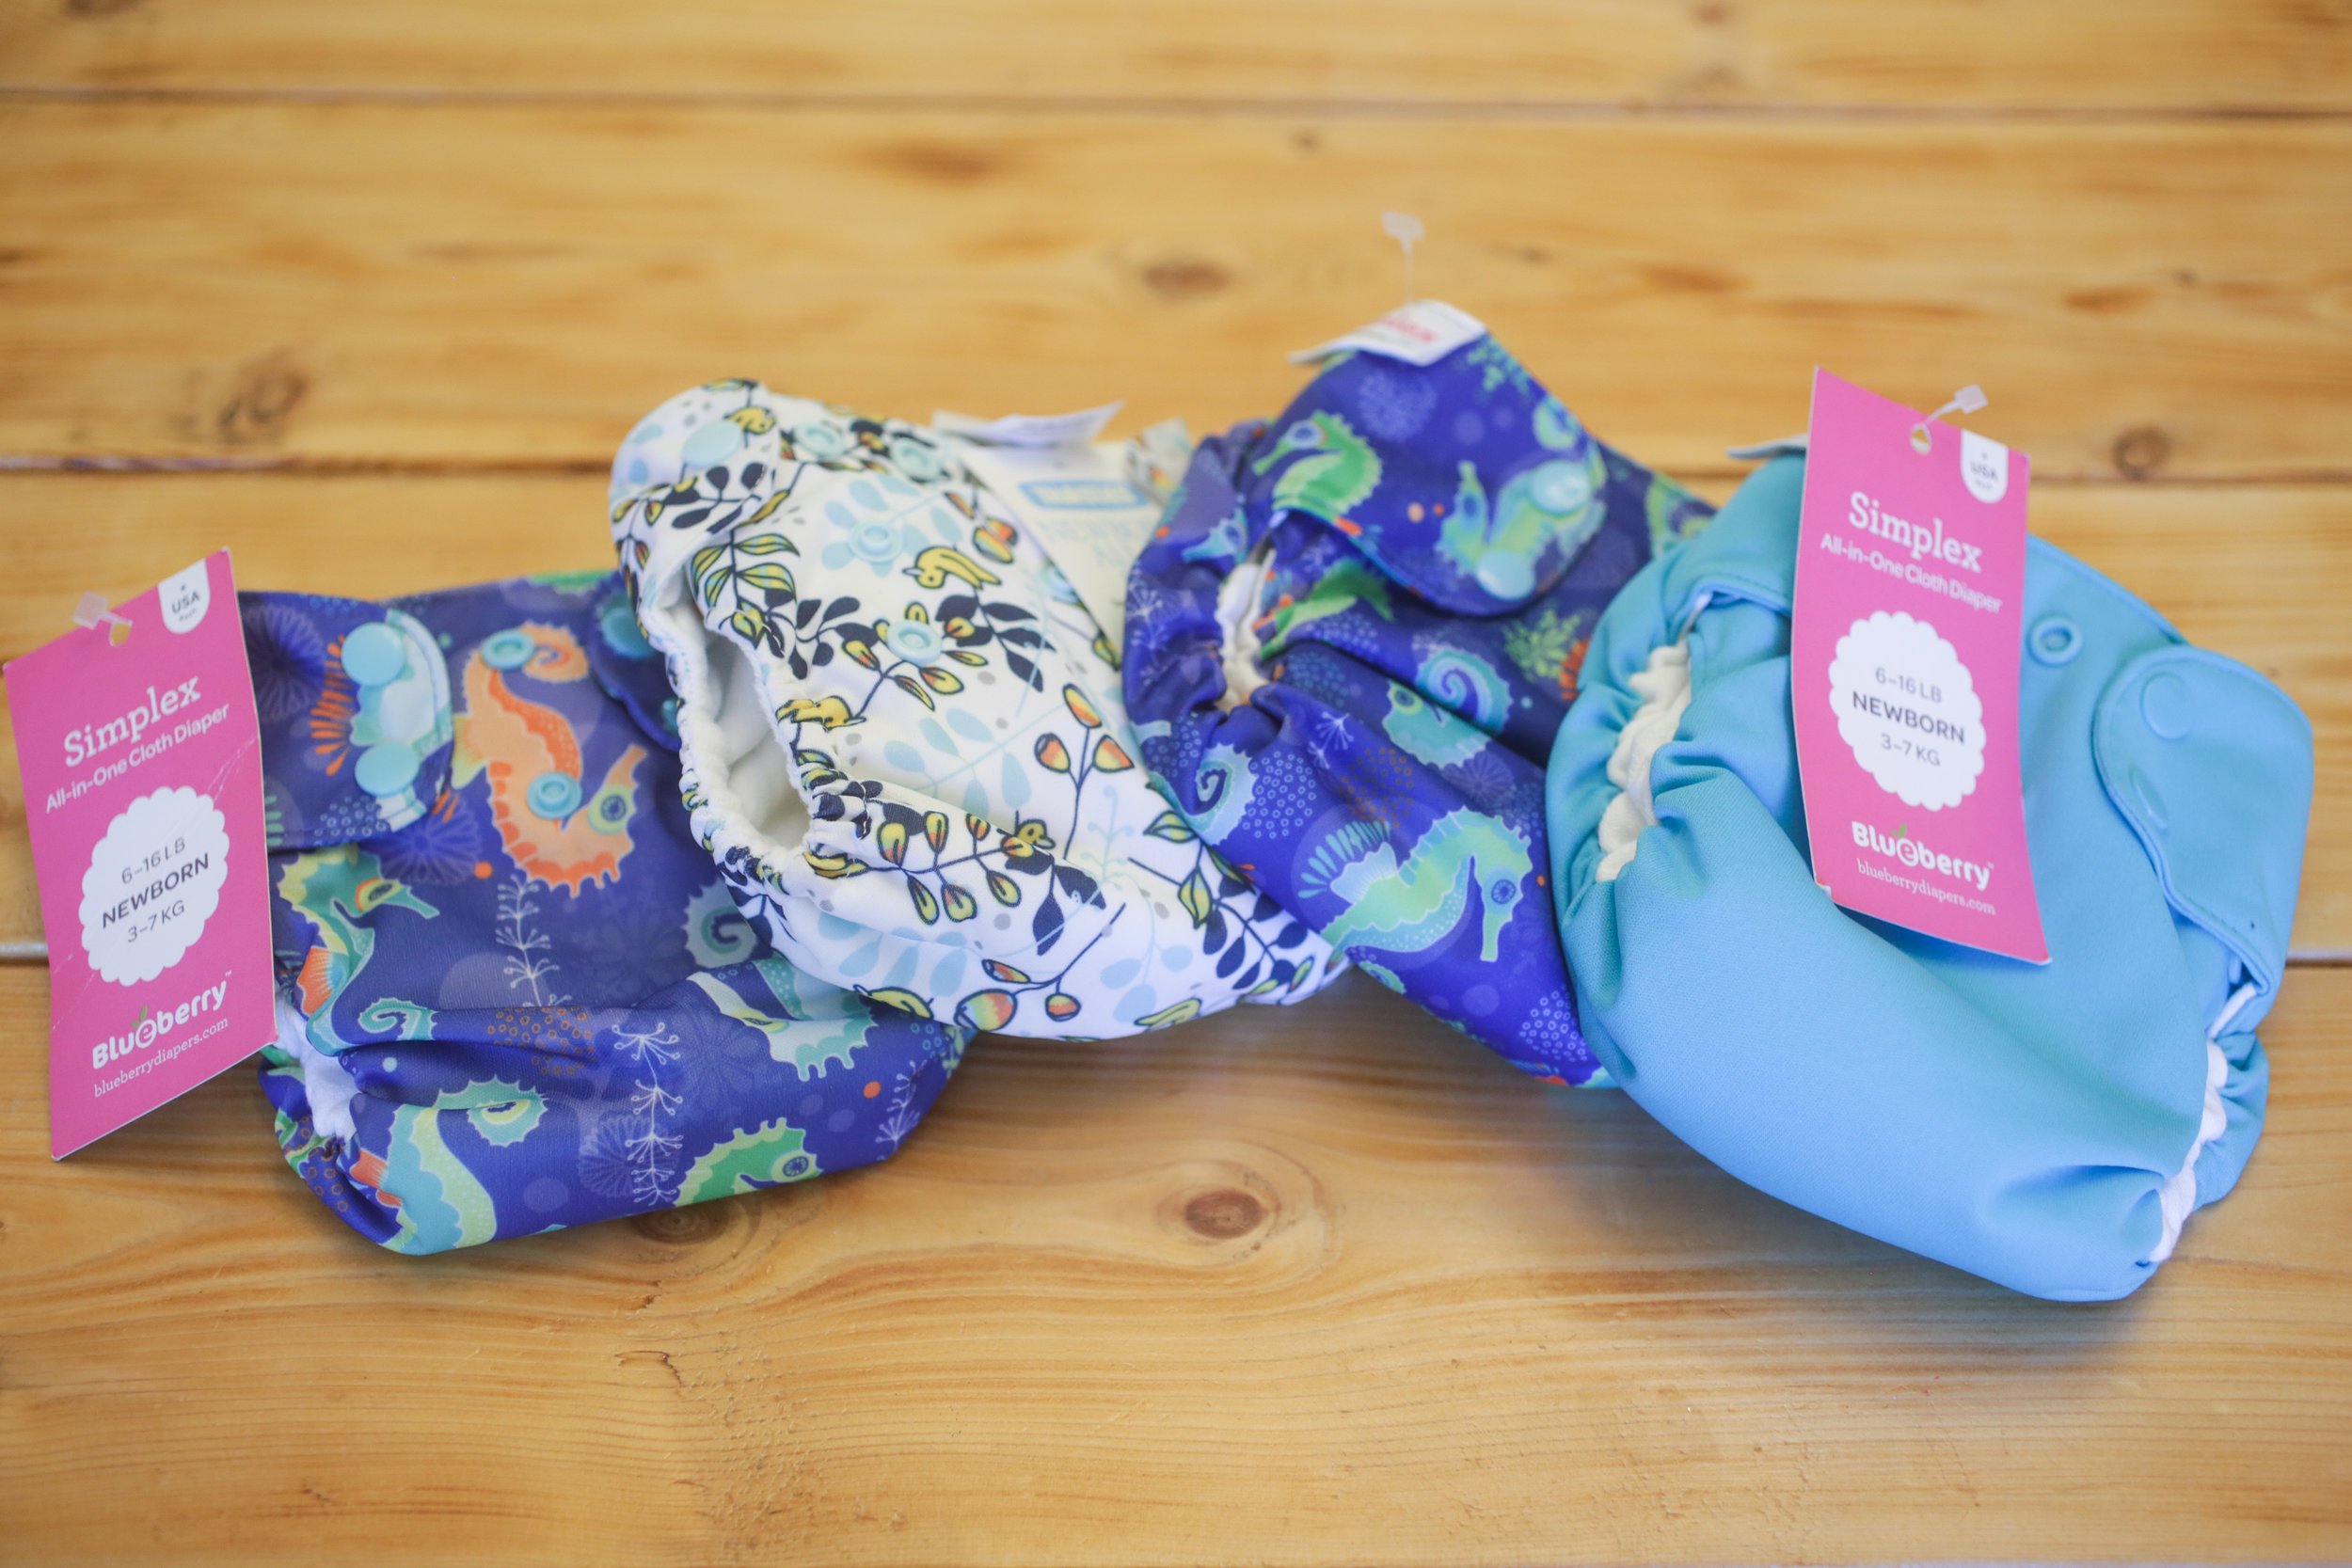 Cloth diapers donated by: Juliet Dietsch